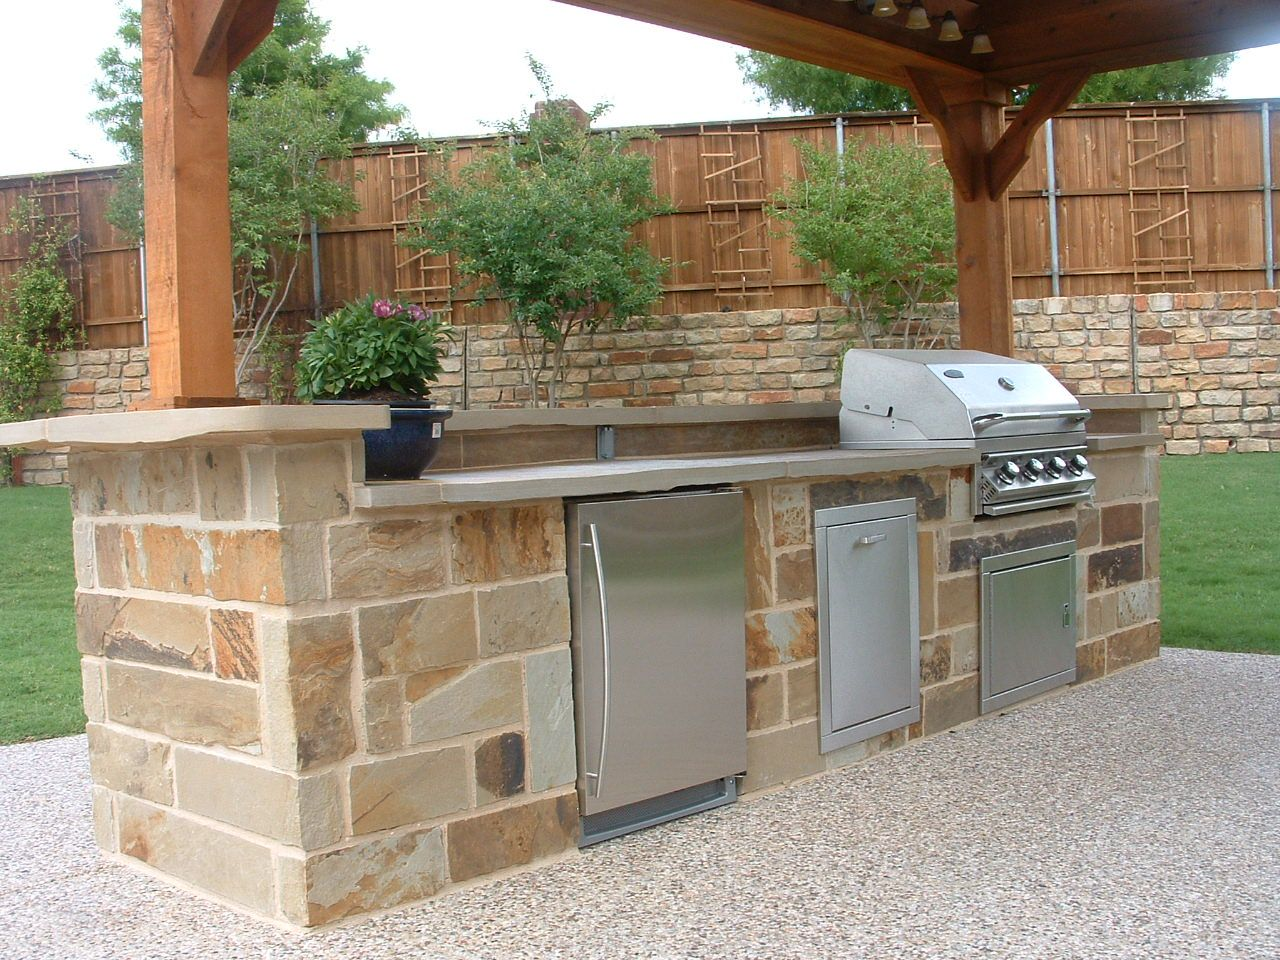 Outdoor kitchen area with grilling station fort worth for Small outdoor patio areas